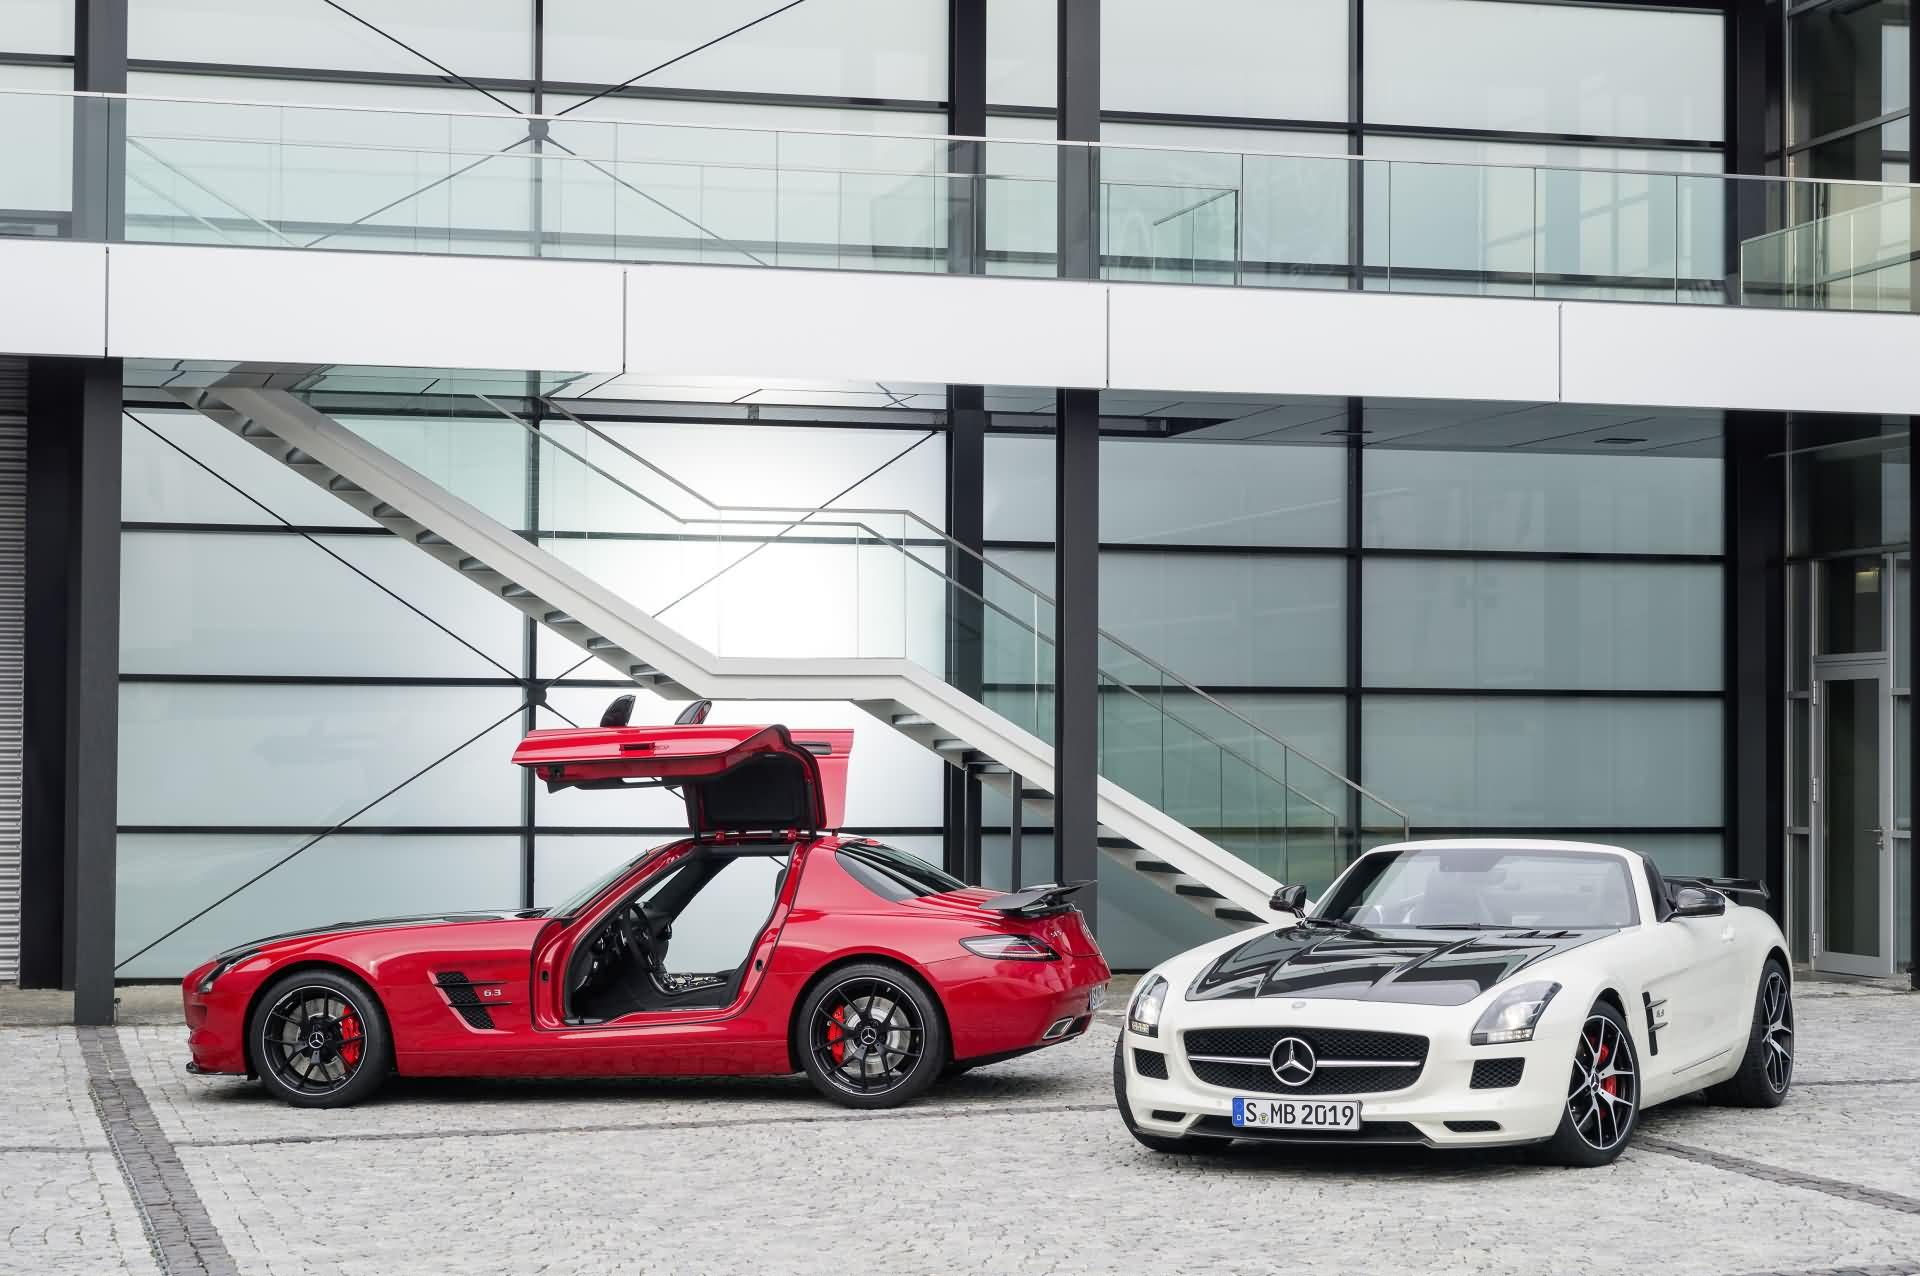 Mercedes-Benz SLS AMG - Coupe / Roadster